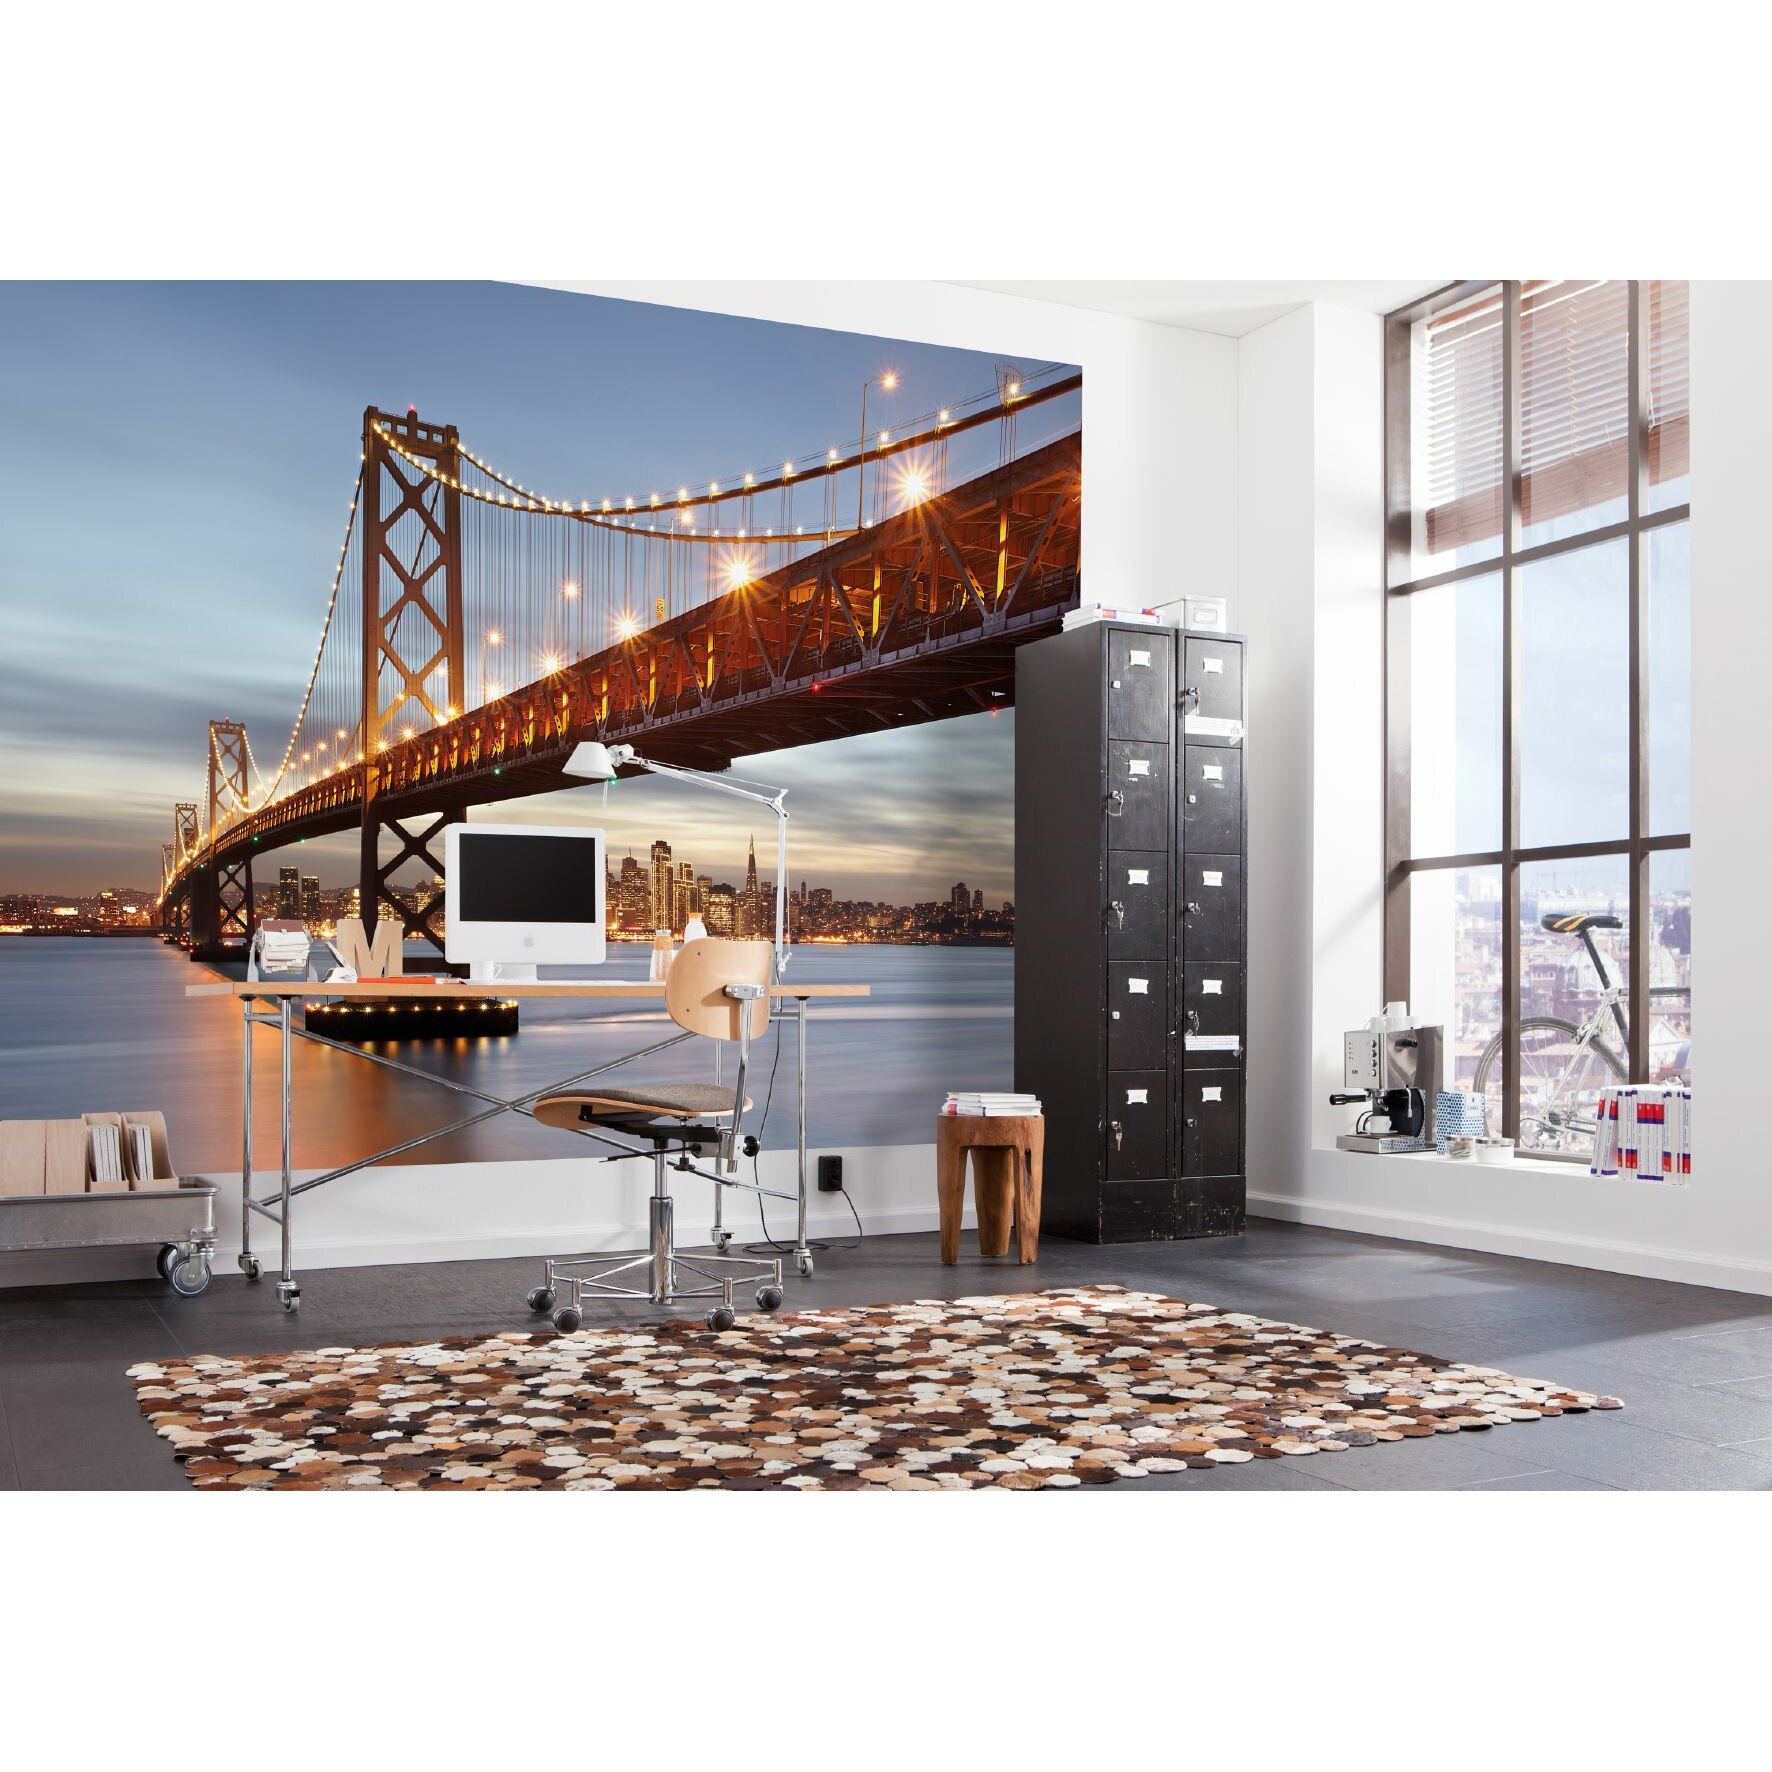 Brewster home fashions komar bay bridge wall mural for Brewster birch wall mural